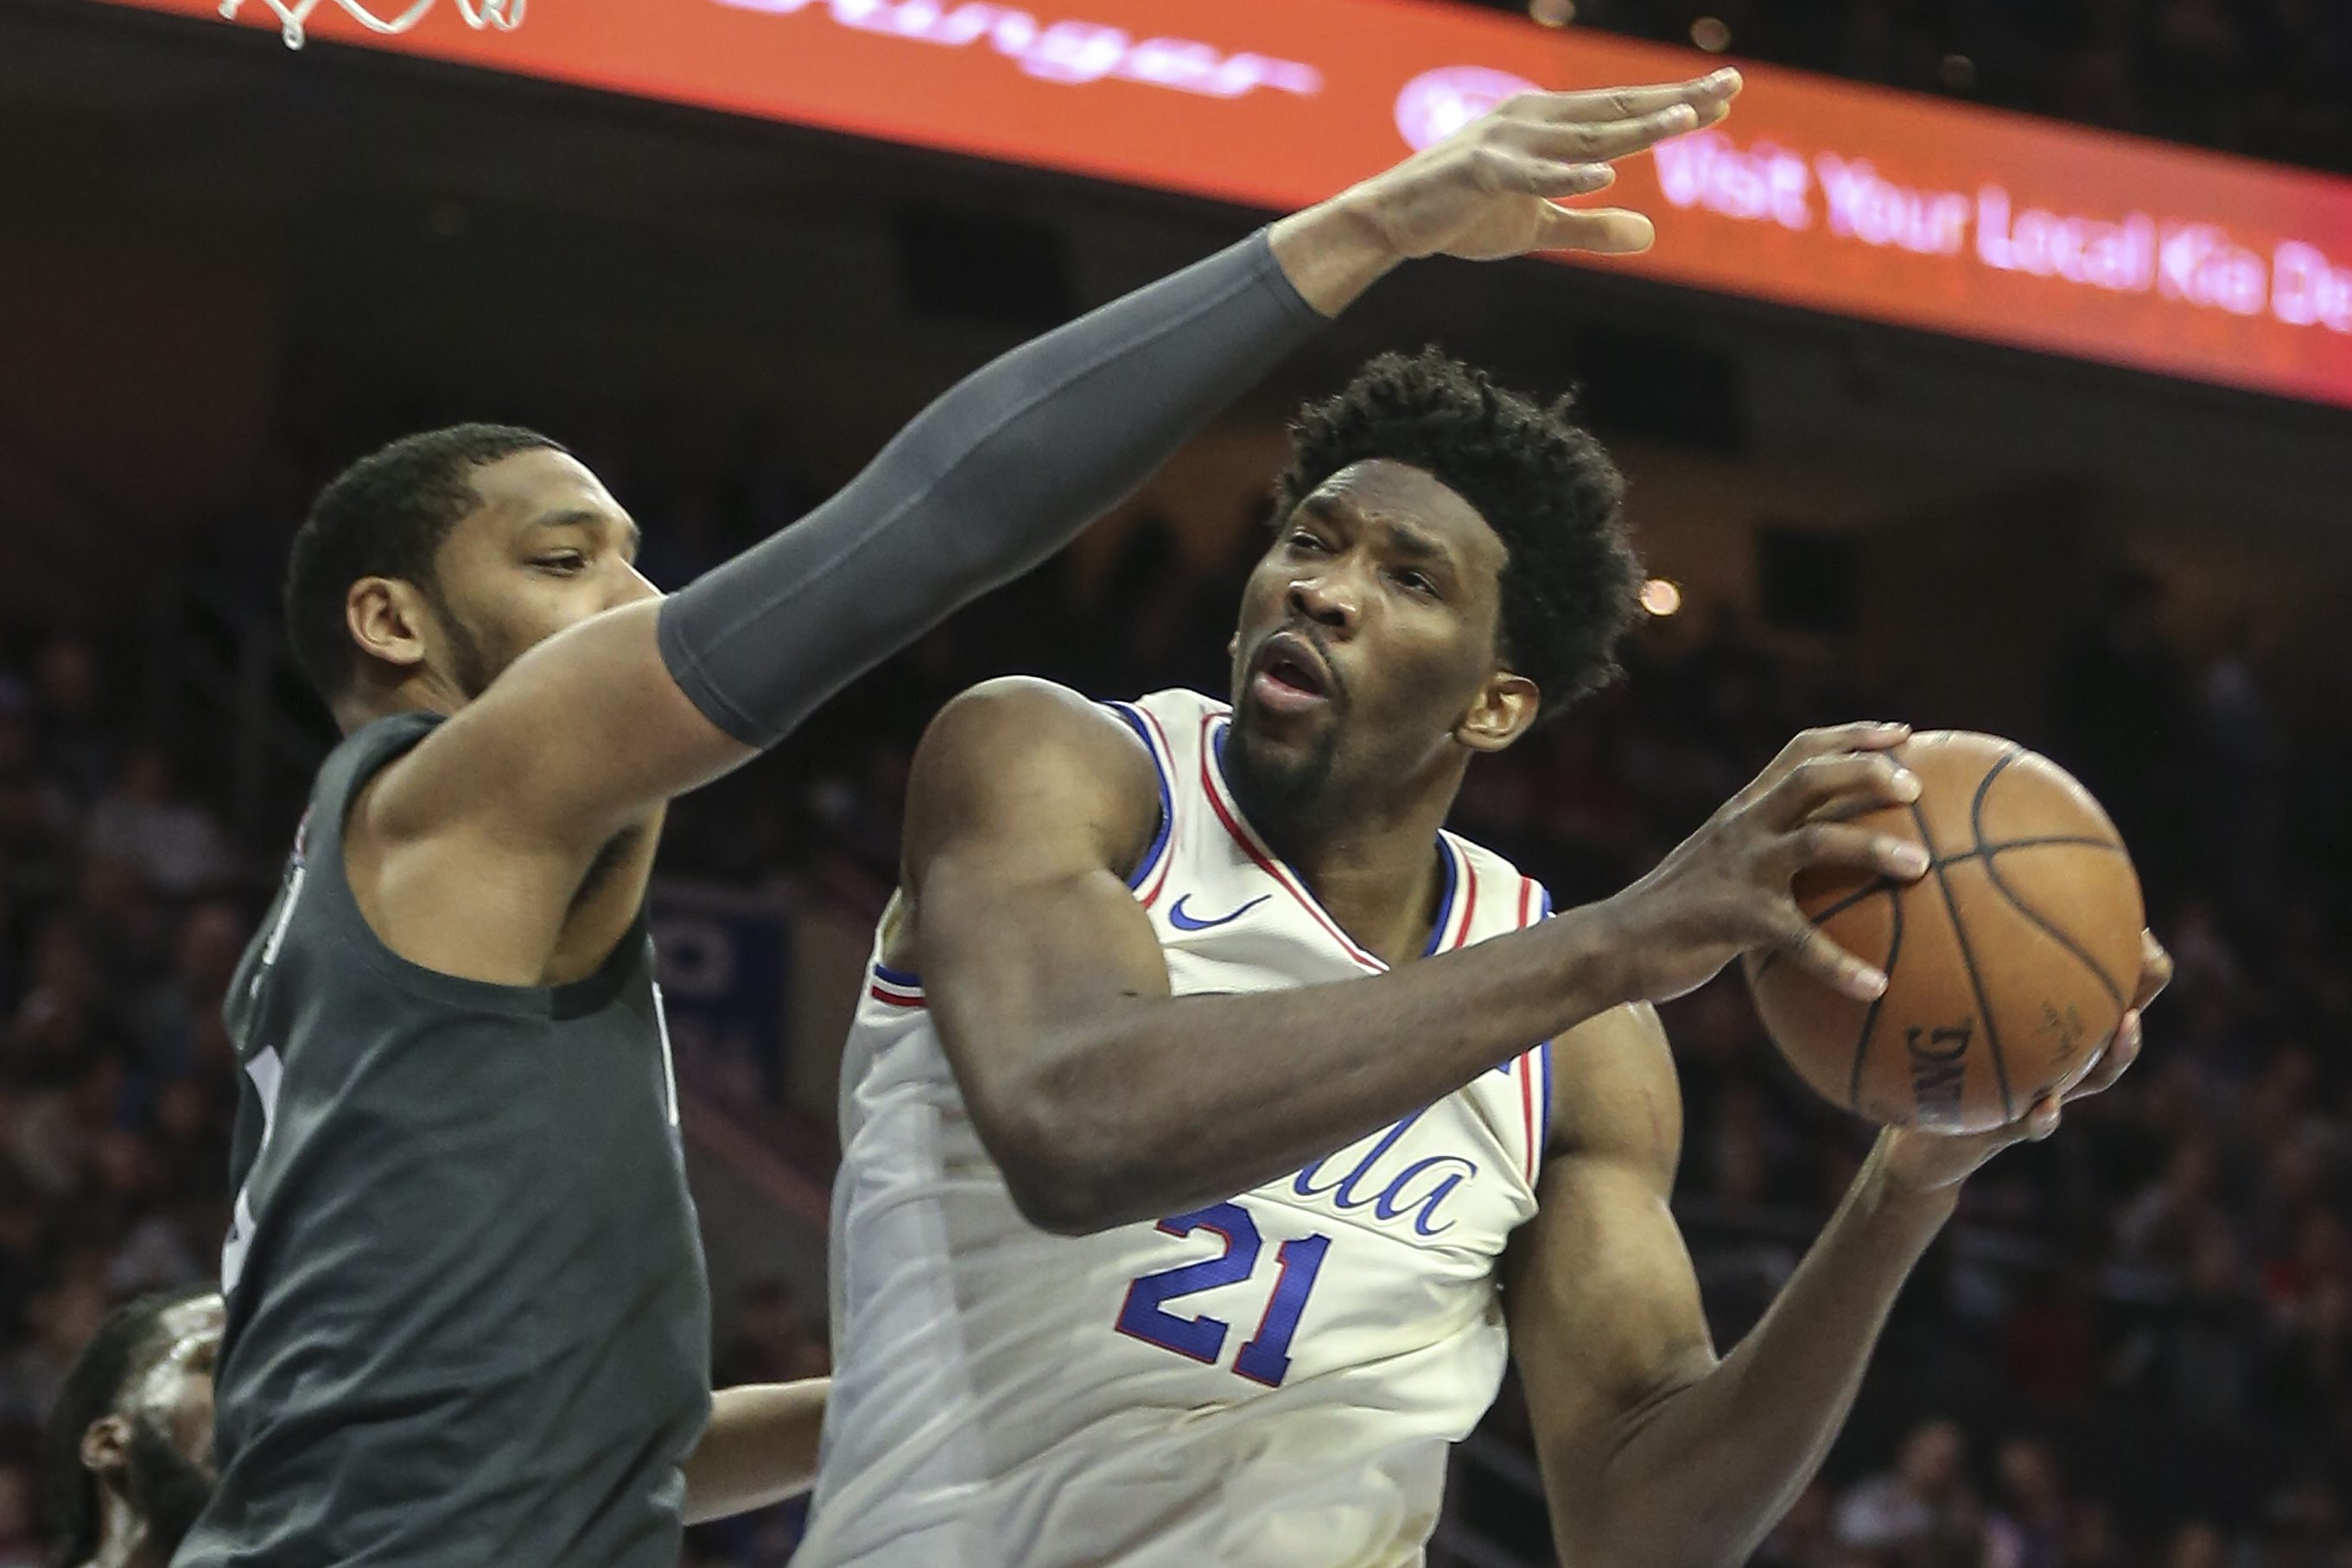 Sixers´ center Joel Embiid goes up against former Sixer and current Nets big man Jahlil Okafor during the Sixers´ win on Friday.